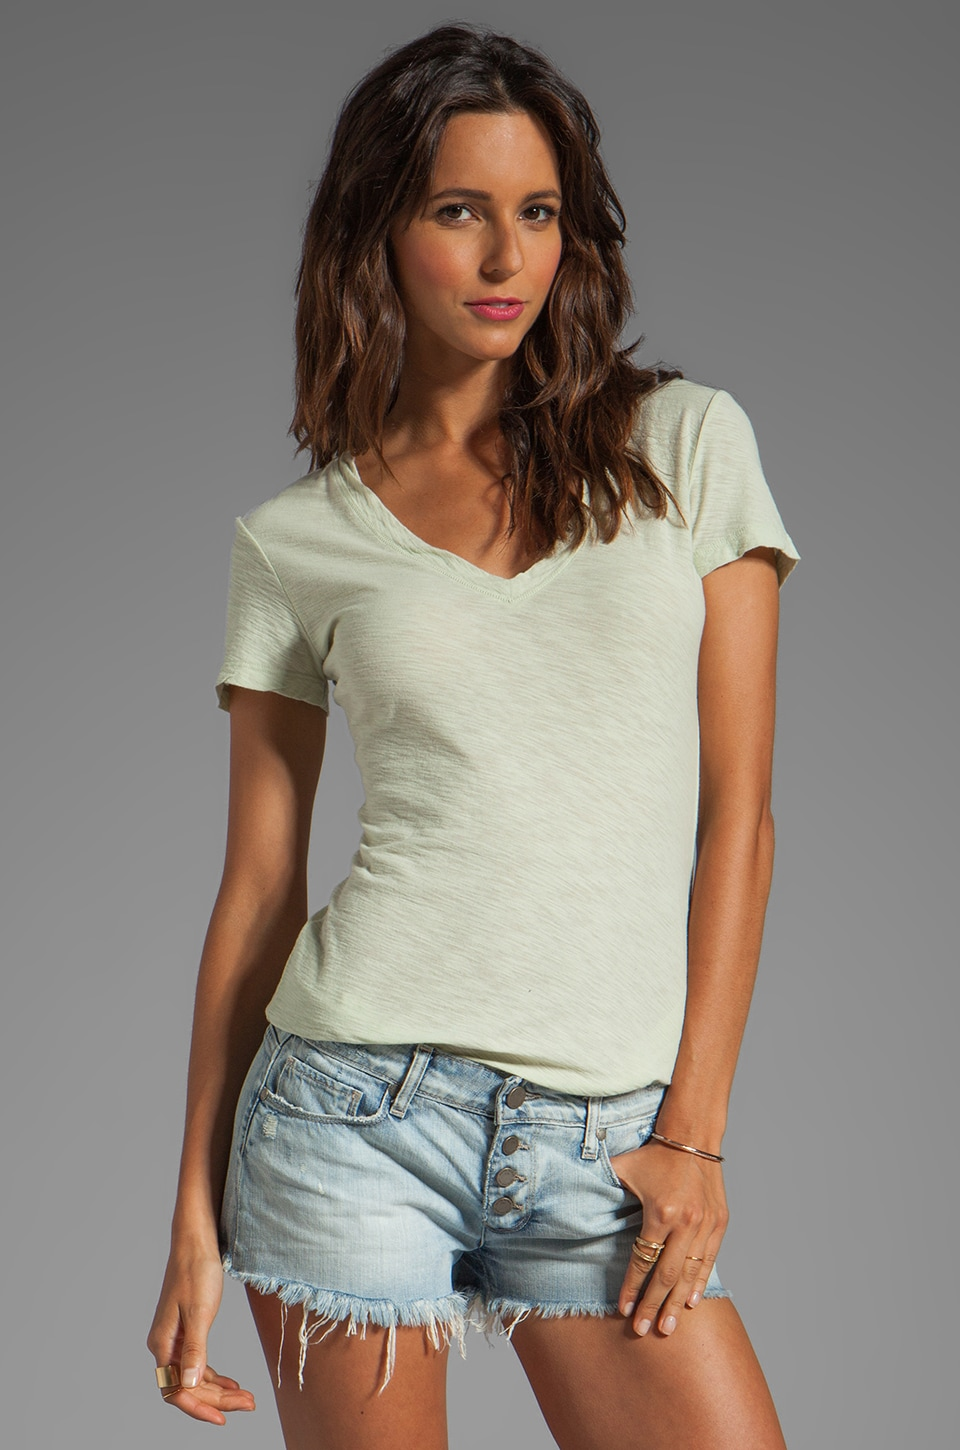 James Perse Casual Tee in Stem